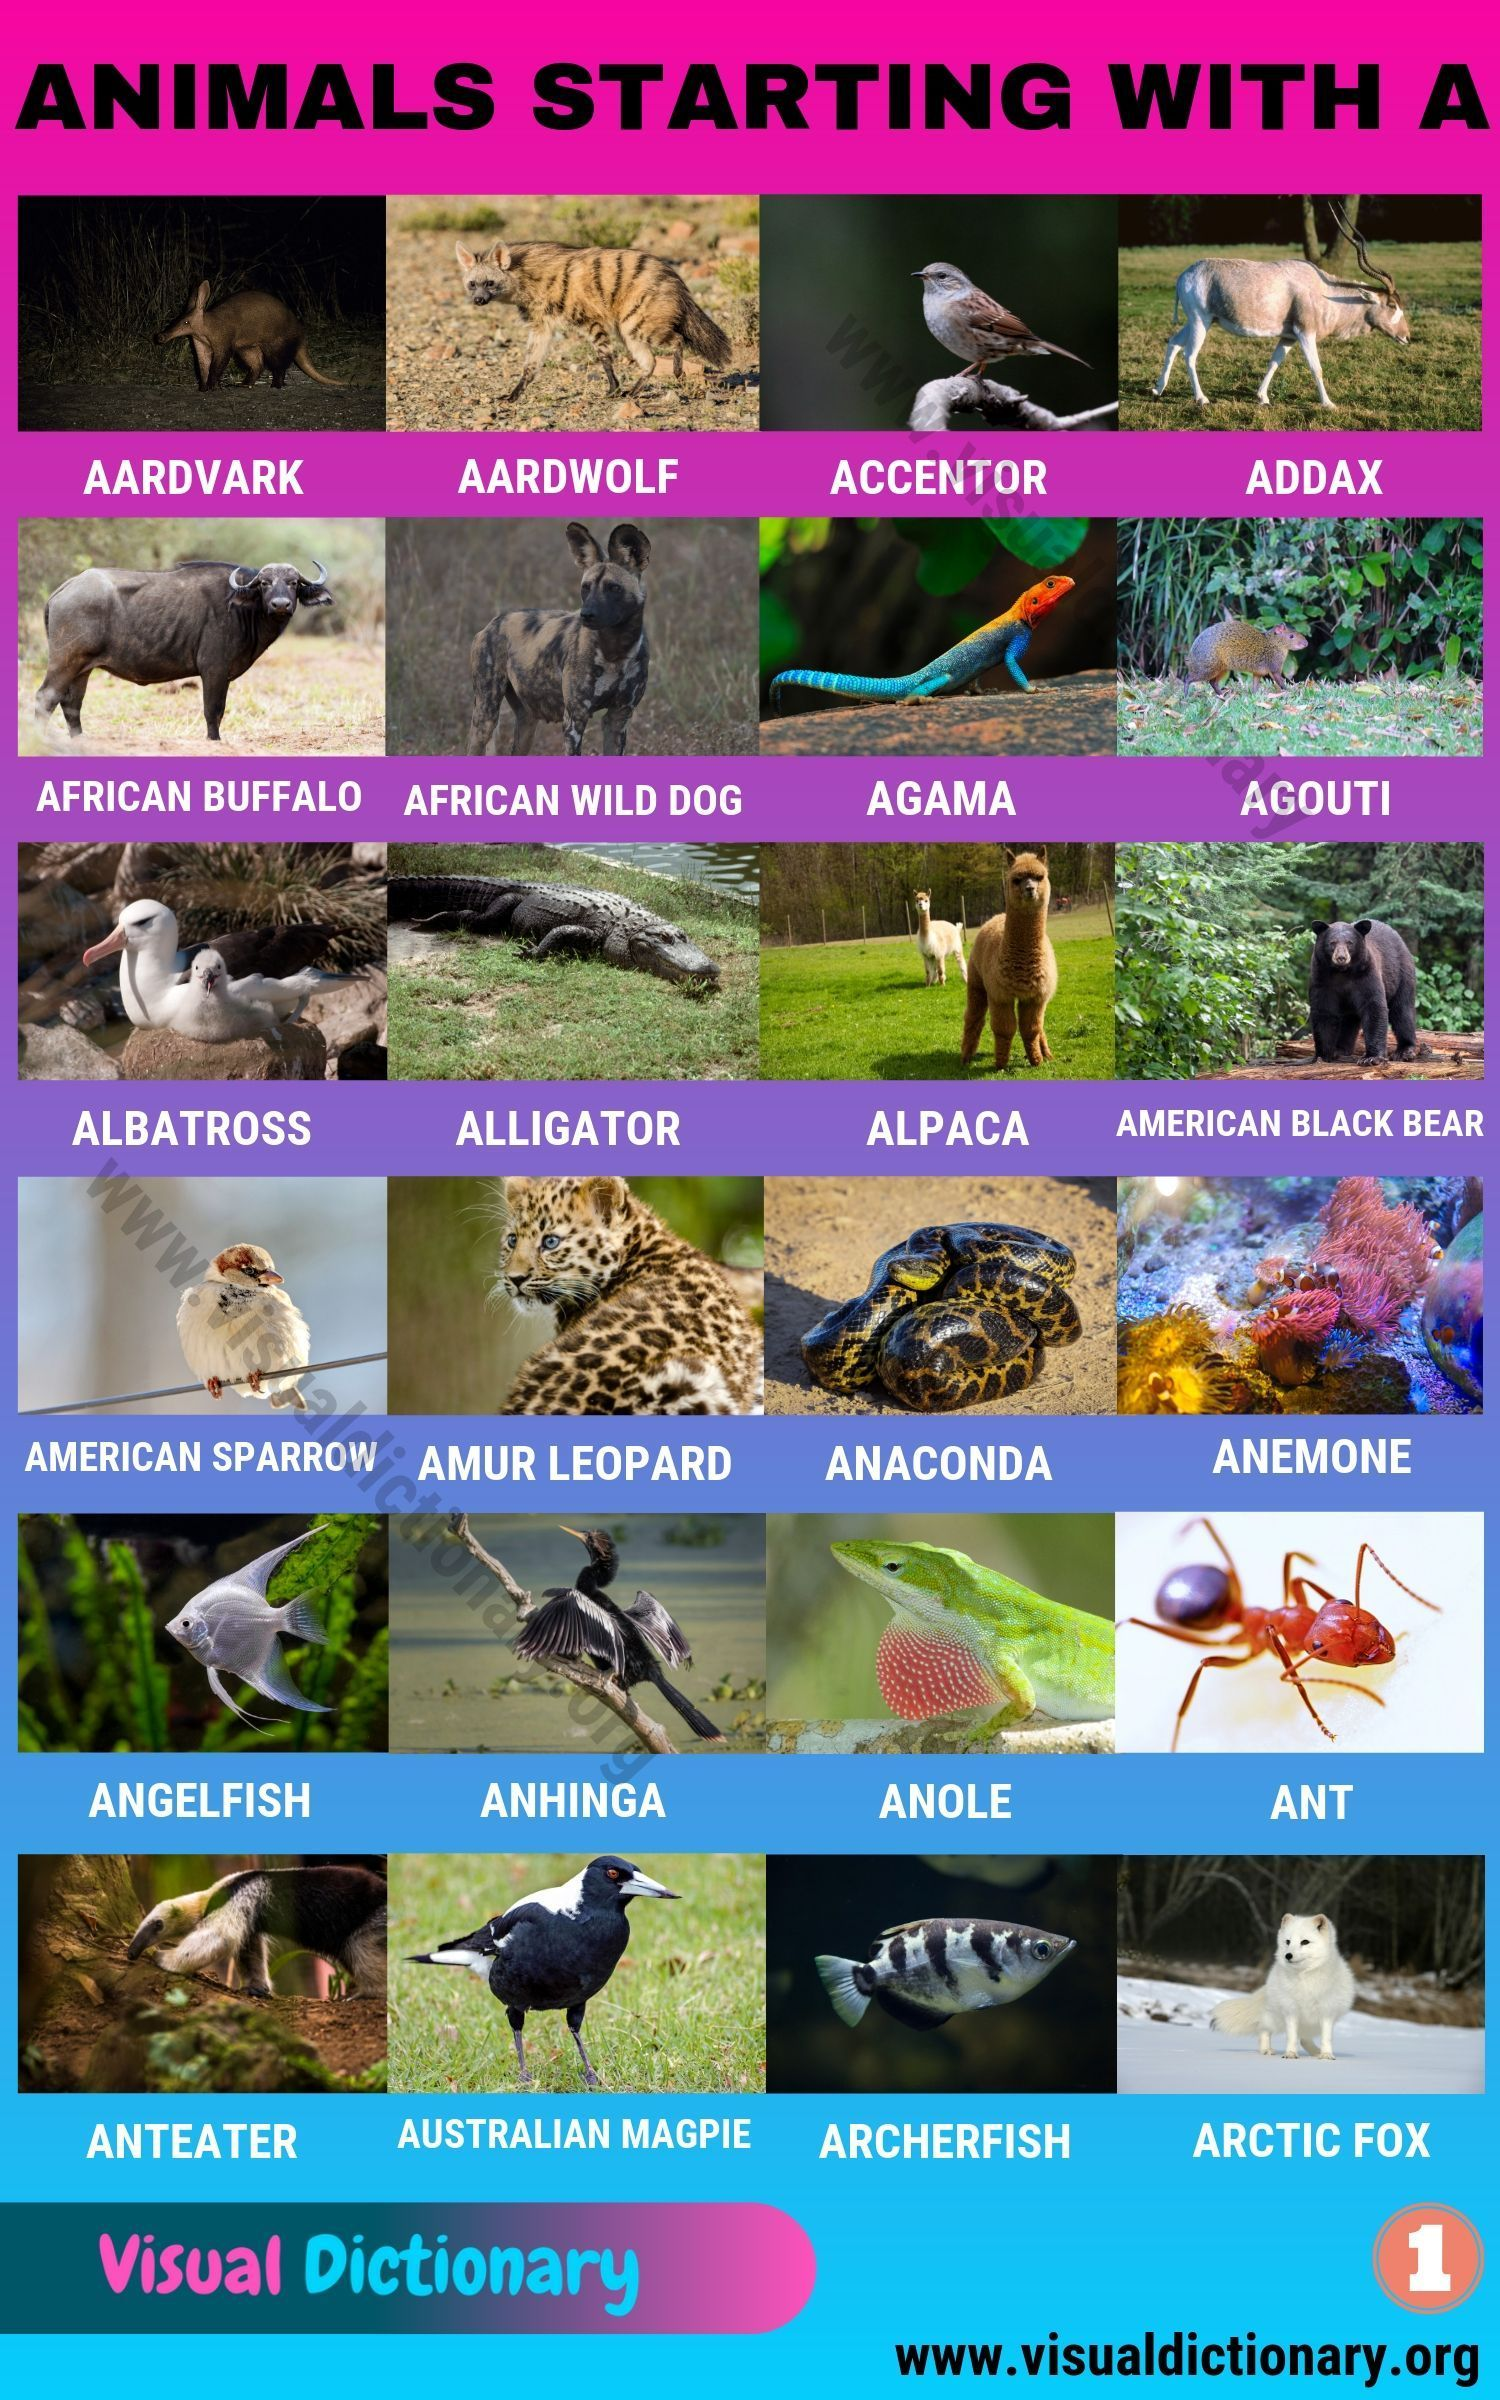 Animals That Start With A Useful List Of 45 Animals Starting With A Visual Dictionary Animals Starting With A Animals Name In English Animals